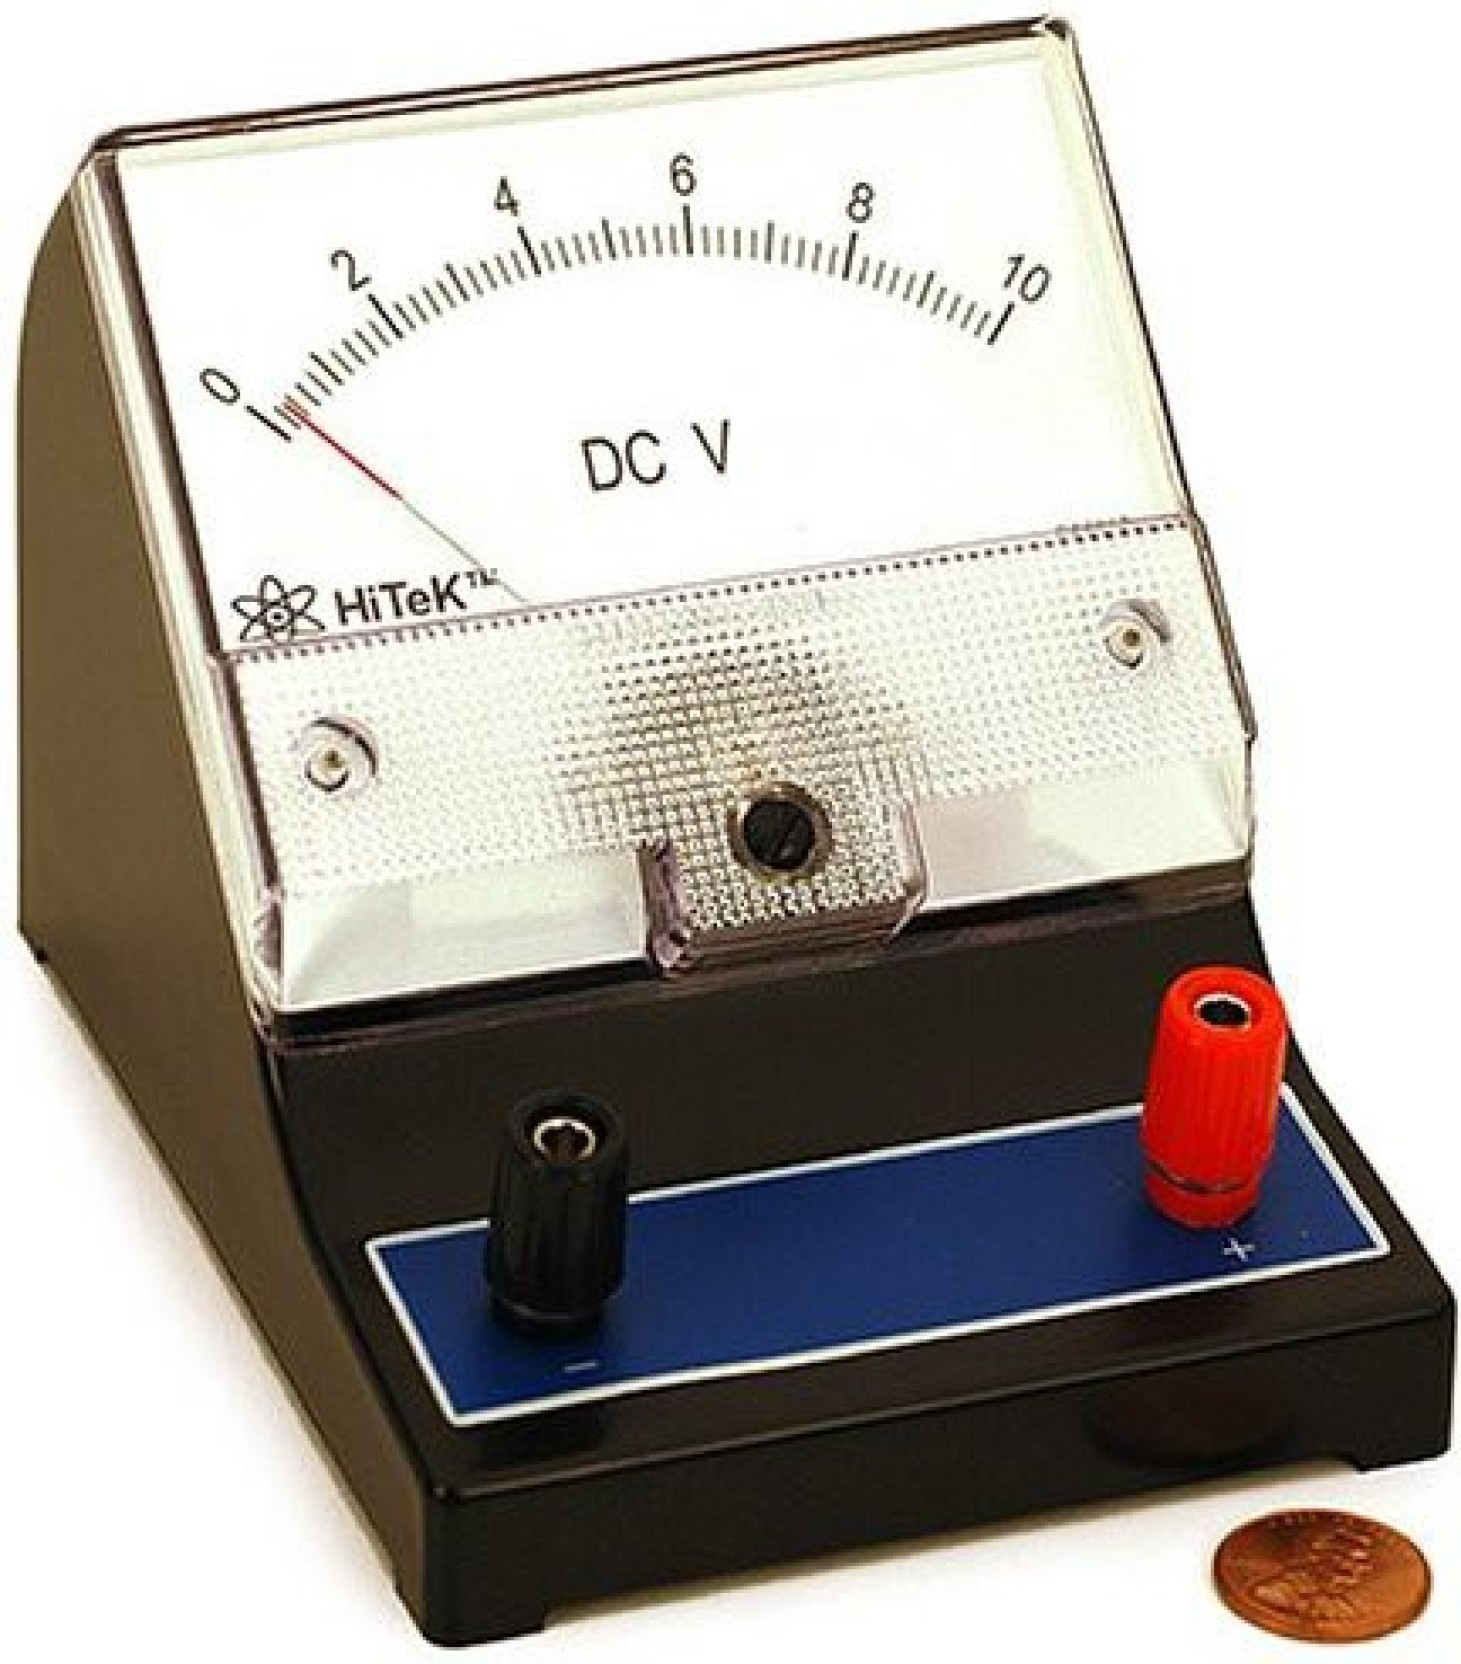 Generic Dc Voltmeter 0 10v Price In India Buy Voltmeters On Offer